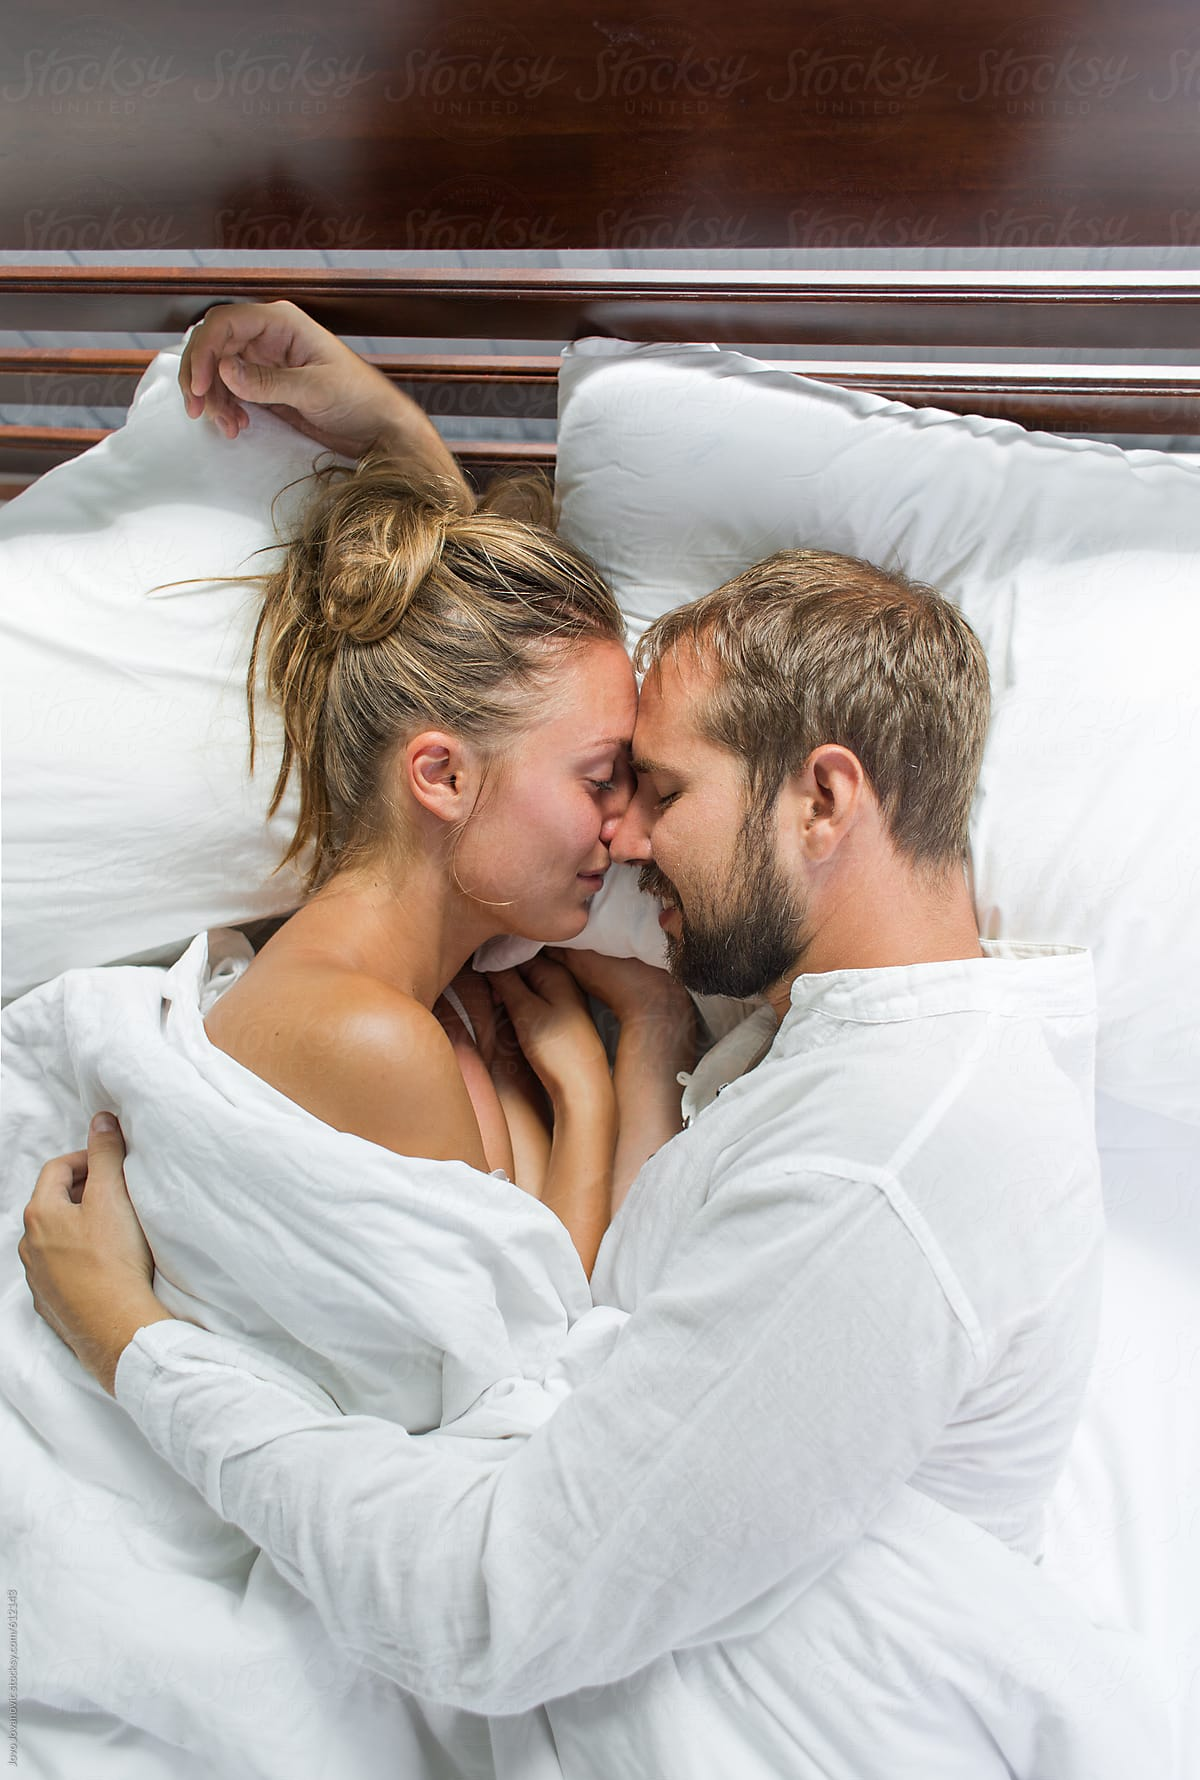 Couple sharing romantic moment in bed together by jovo jovanovic for stocksy united